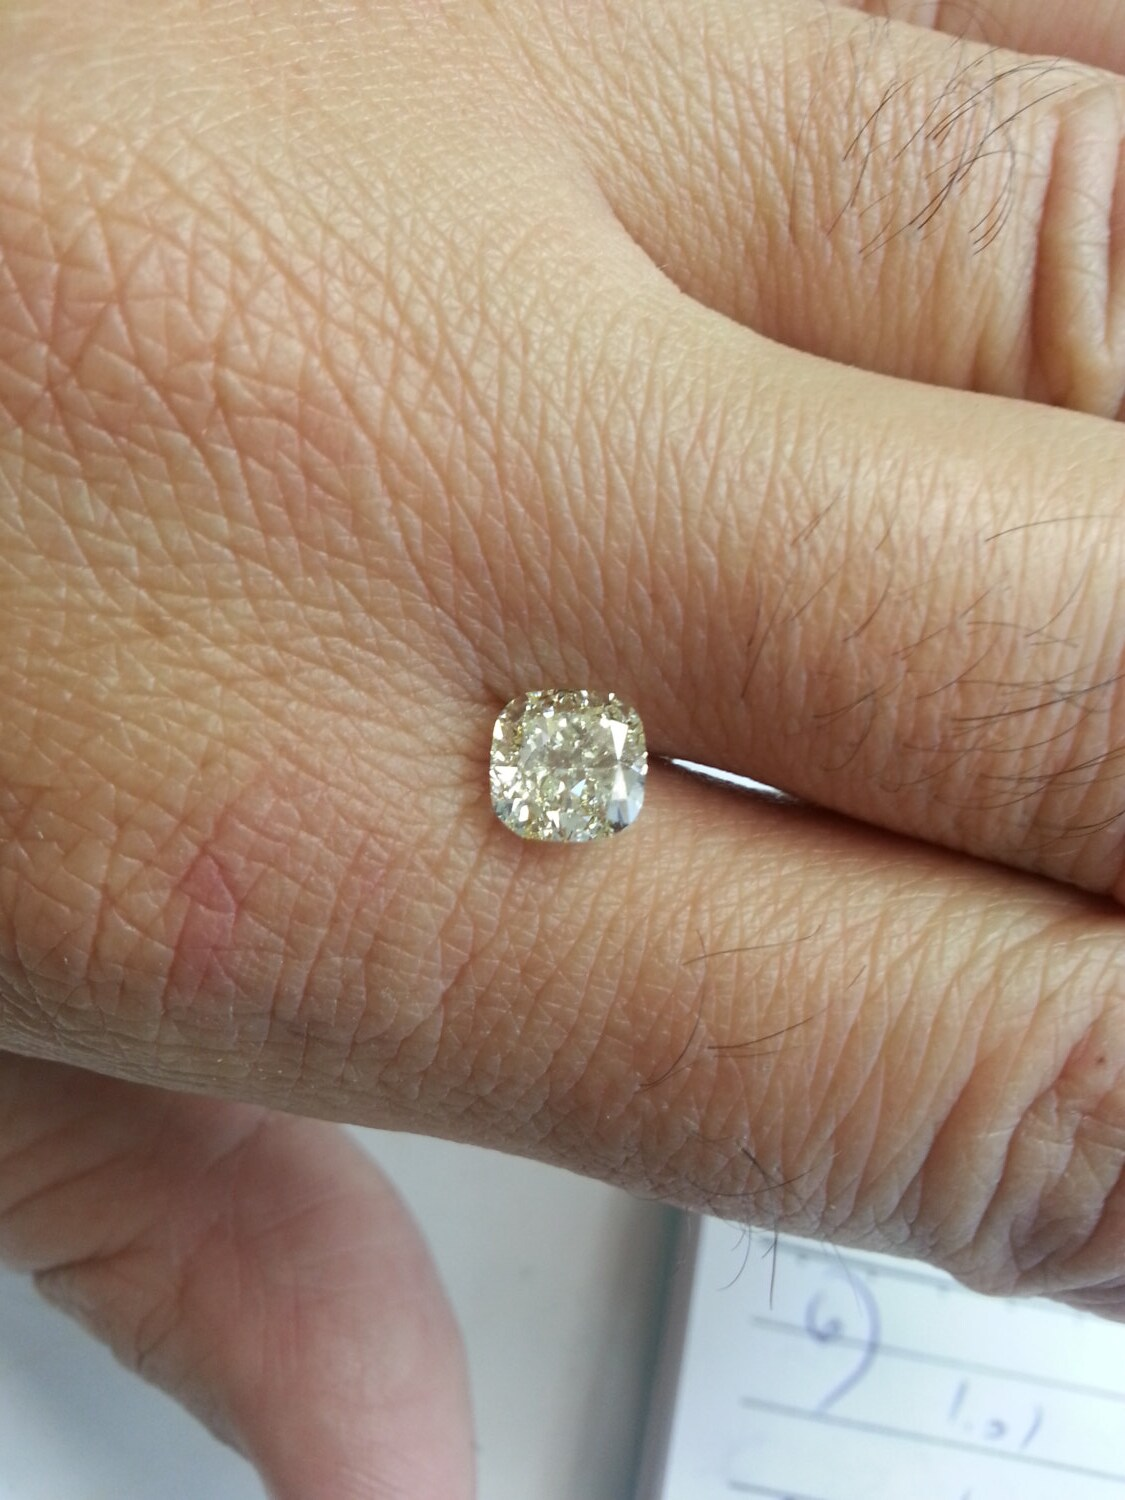 catalogue gems wizman carat clarity round color diamond diamonds g